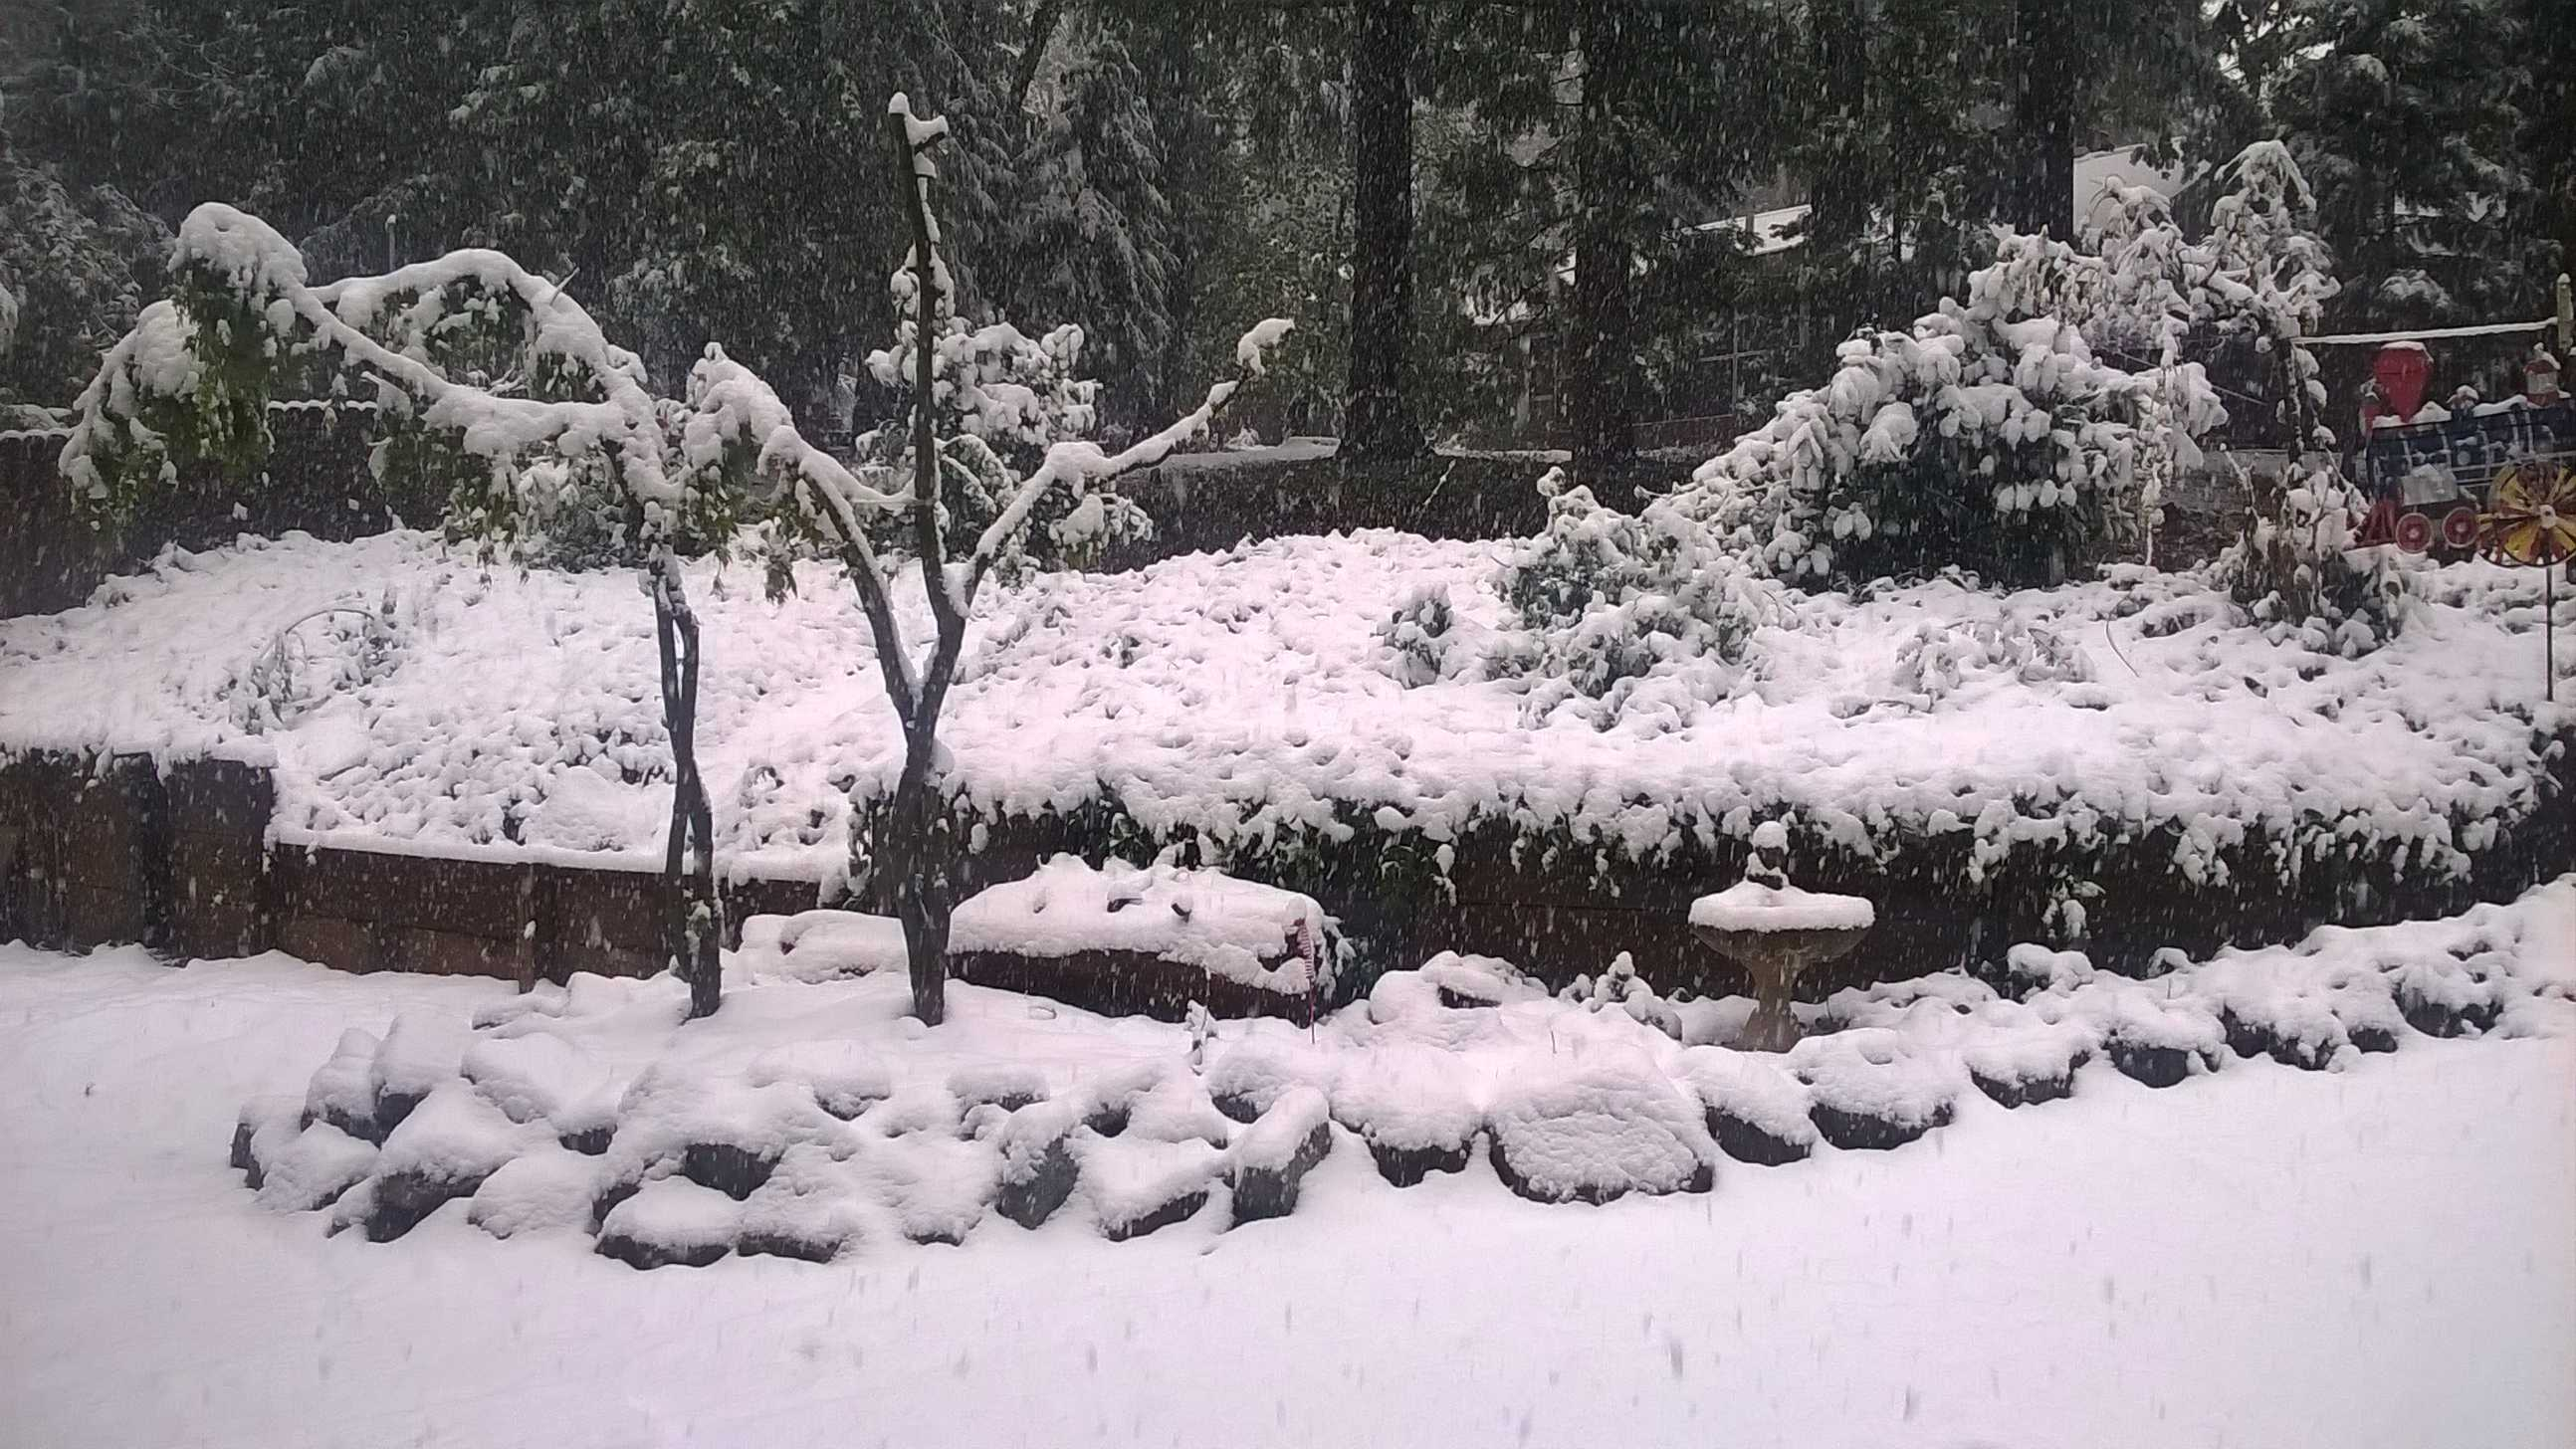 A winter wonderland in Colfax, Calif. (April 7, 2015)